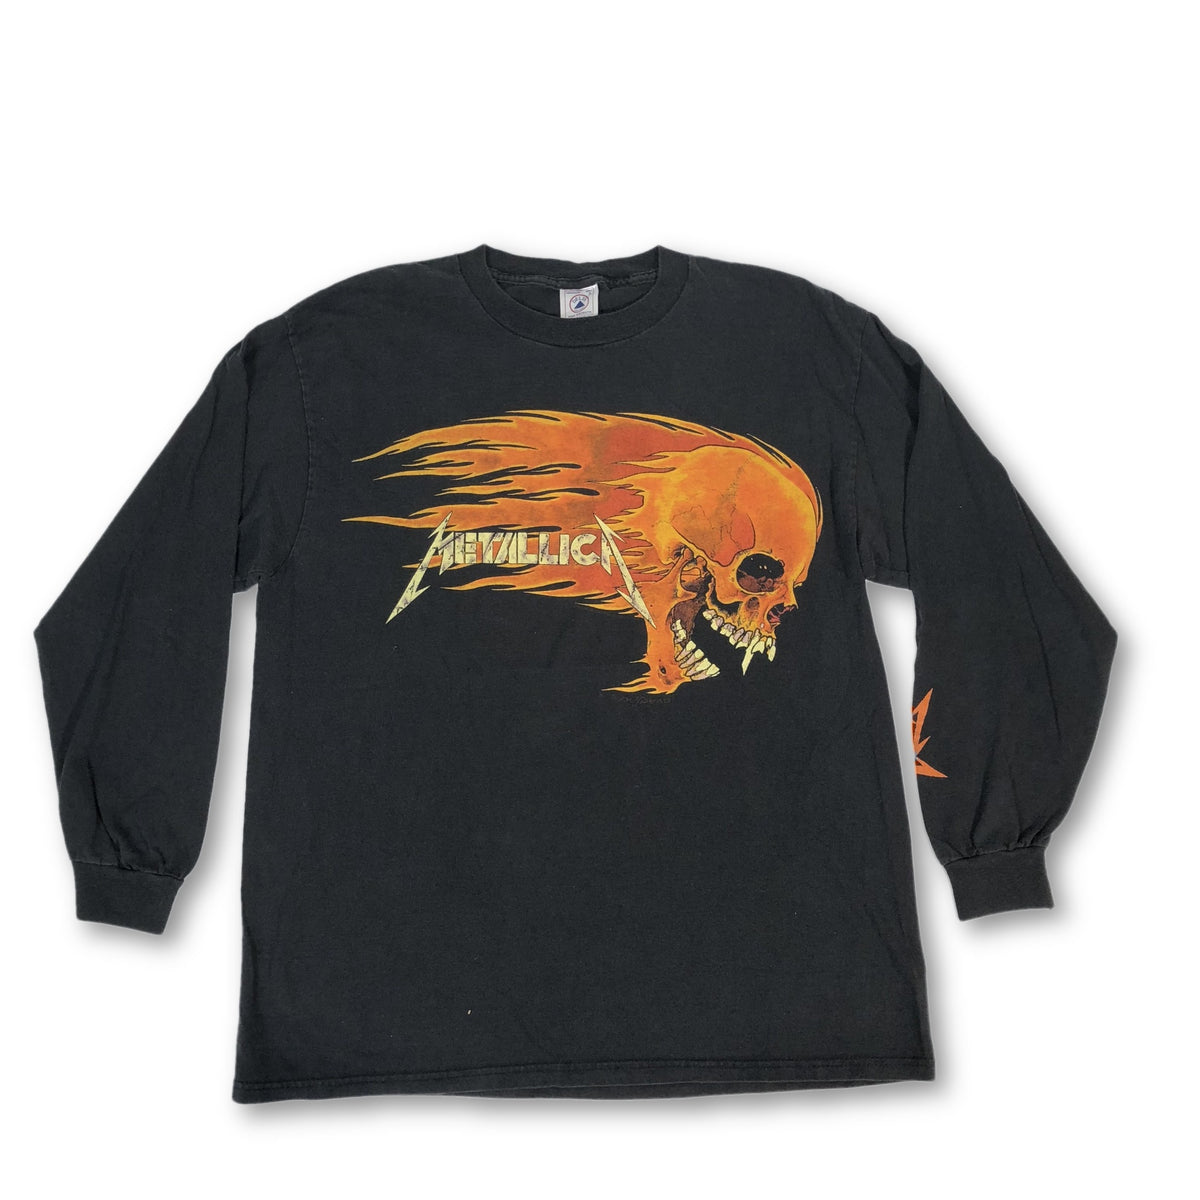 "Vintage Metallica ""Pushead Skull"" Long Sleeve T-Shirt - jointcustodydc"